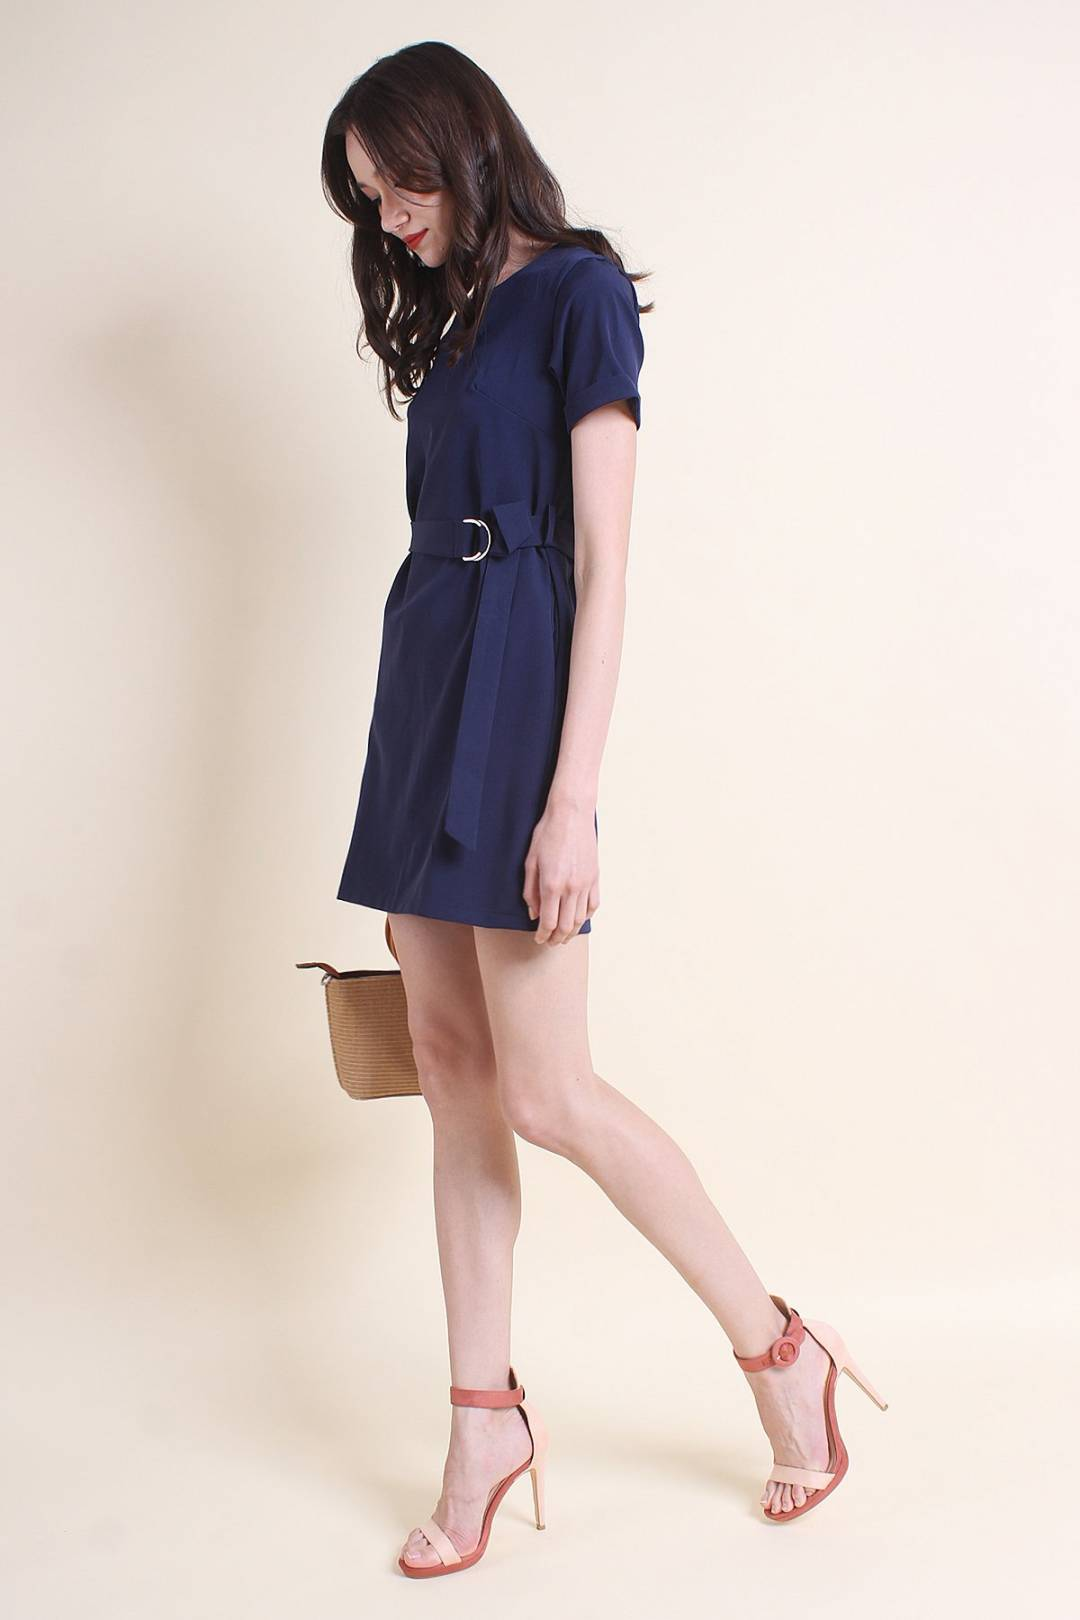 MADEBYNM MURPHY BELTED SLEEVE WORK DRESS IN NAVY BLUE [XS/S/M/L]